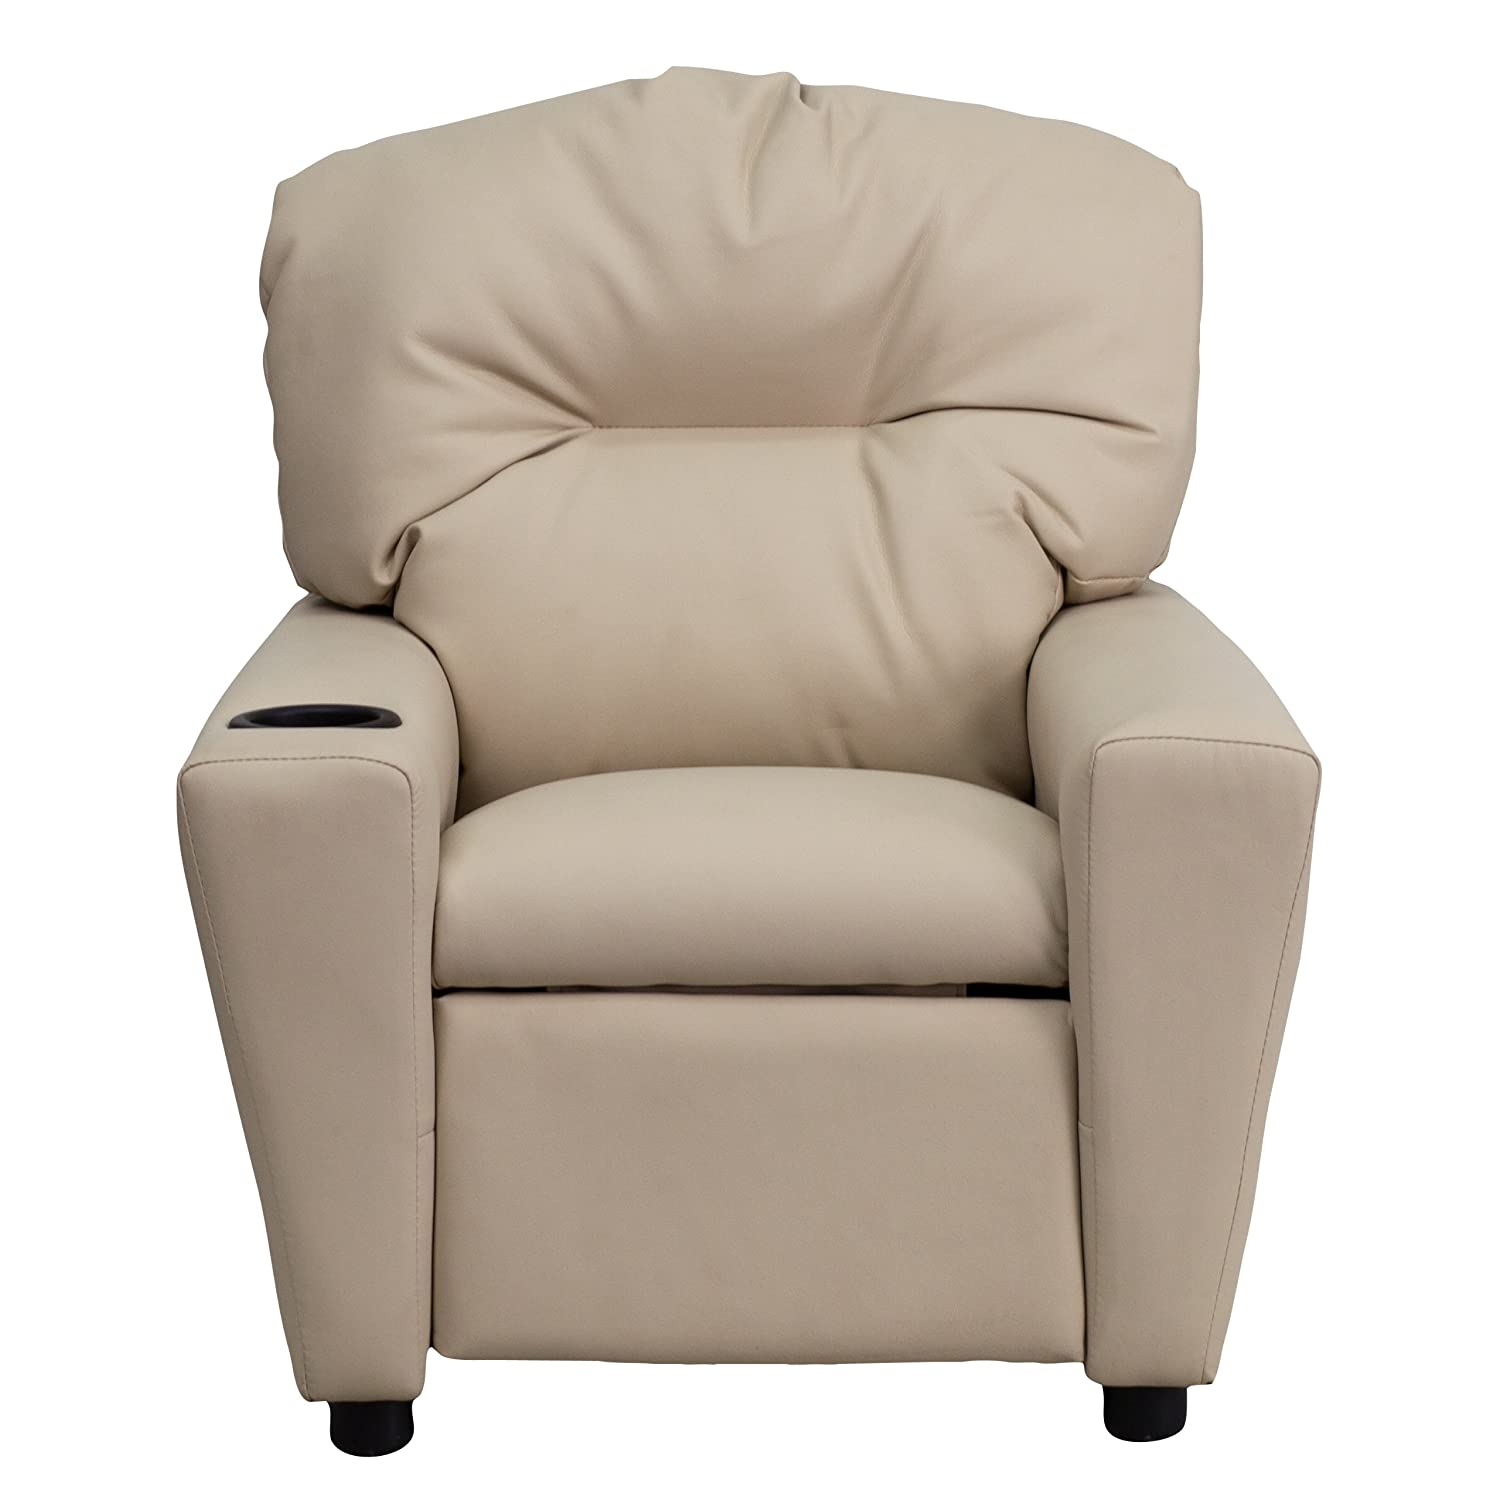 Amazon.com Flash Furniture Contemporary Beige Vinyl Kids Recliner with Cup Holder Kitchen u0026 Dining  sc 1 st  Amazon.com & Amazon.com: Flash Furniture Contemporary Beige Vinyl Kids Recliner ... islam-shia.org